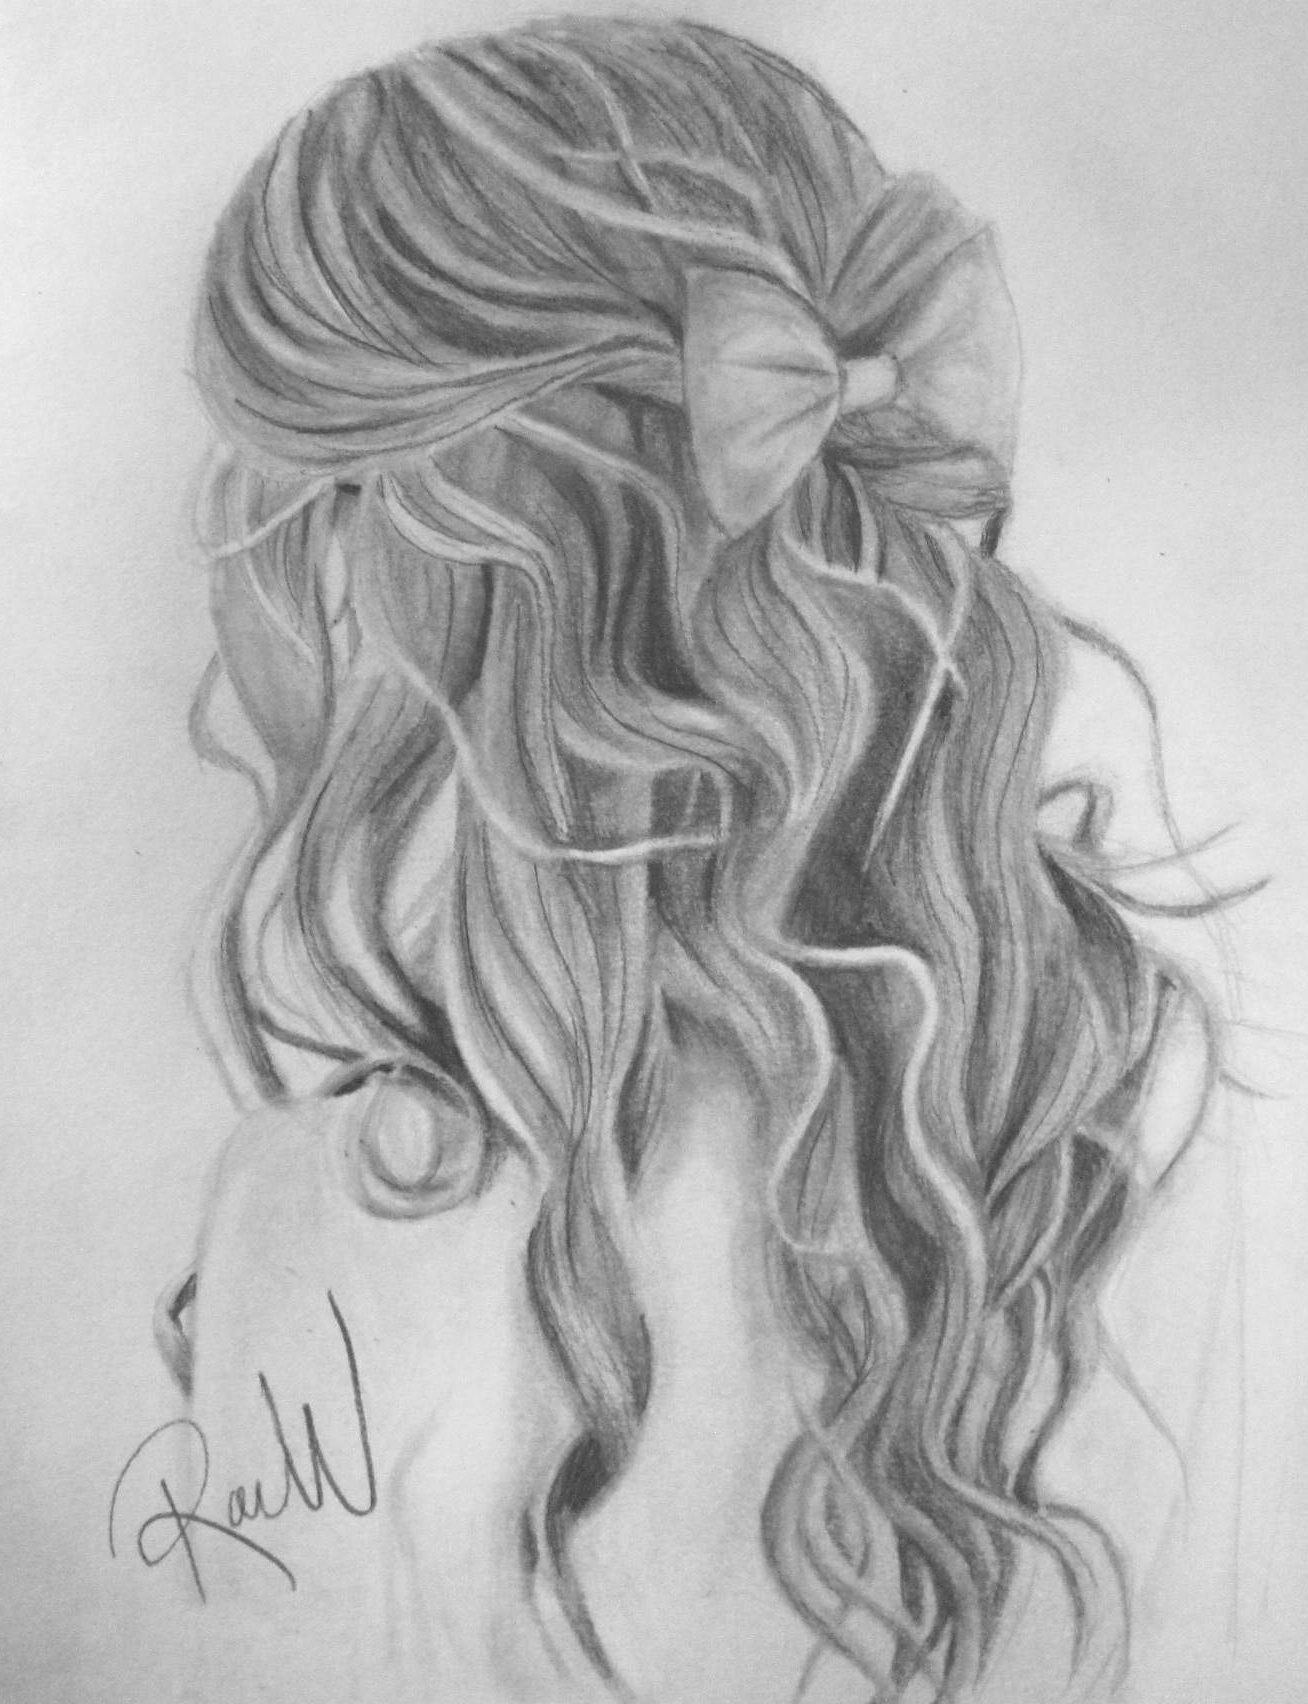 Black And White Hair Sketche Sketches Hair Sketch Drawings